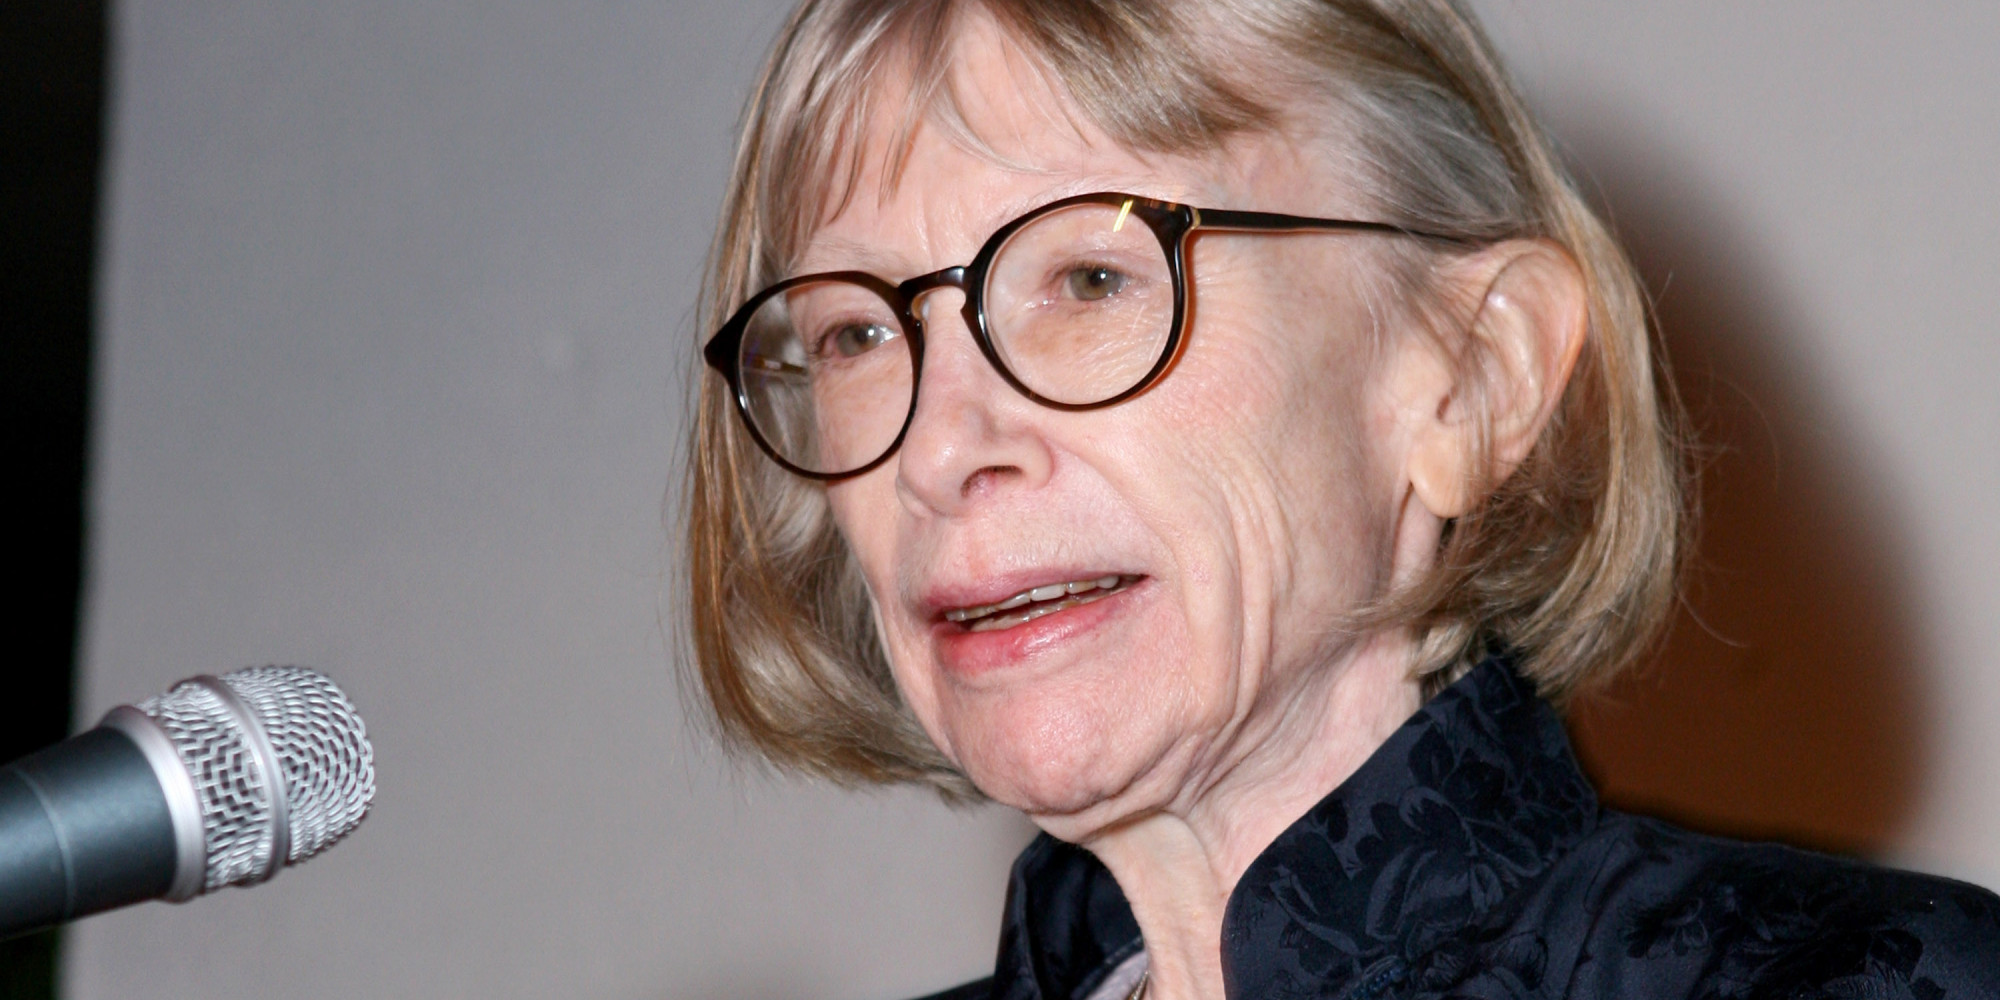 """joan didion essays list Famous essays: get inspired from 8 famous american essay writers of the 20th century 15 dec 2015 joan didion and her """"joan didion"""" essays works."""